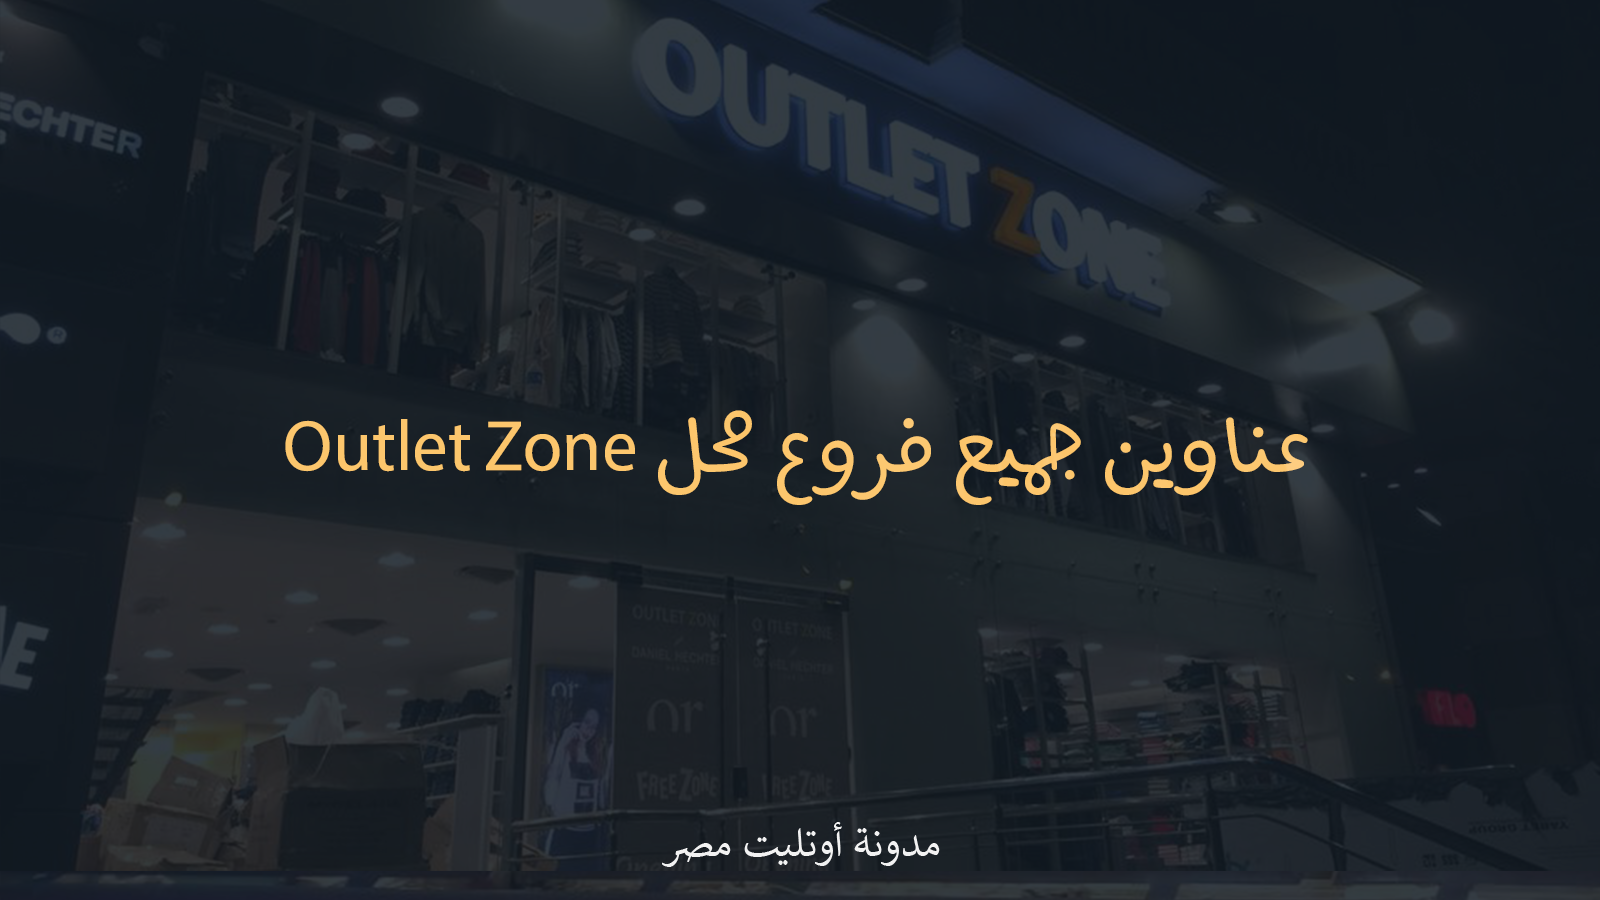 18dafc2cb فروع محل Outlet Zone